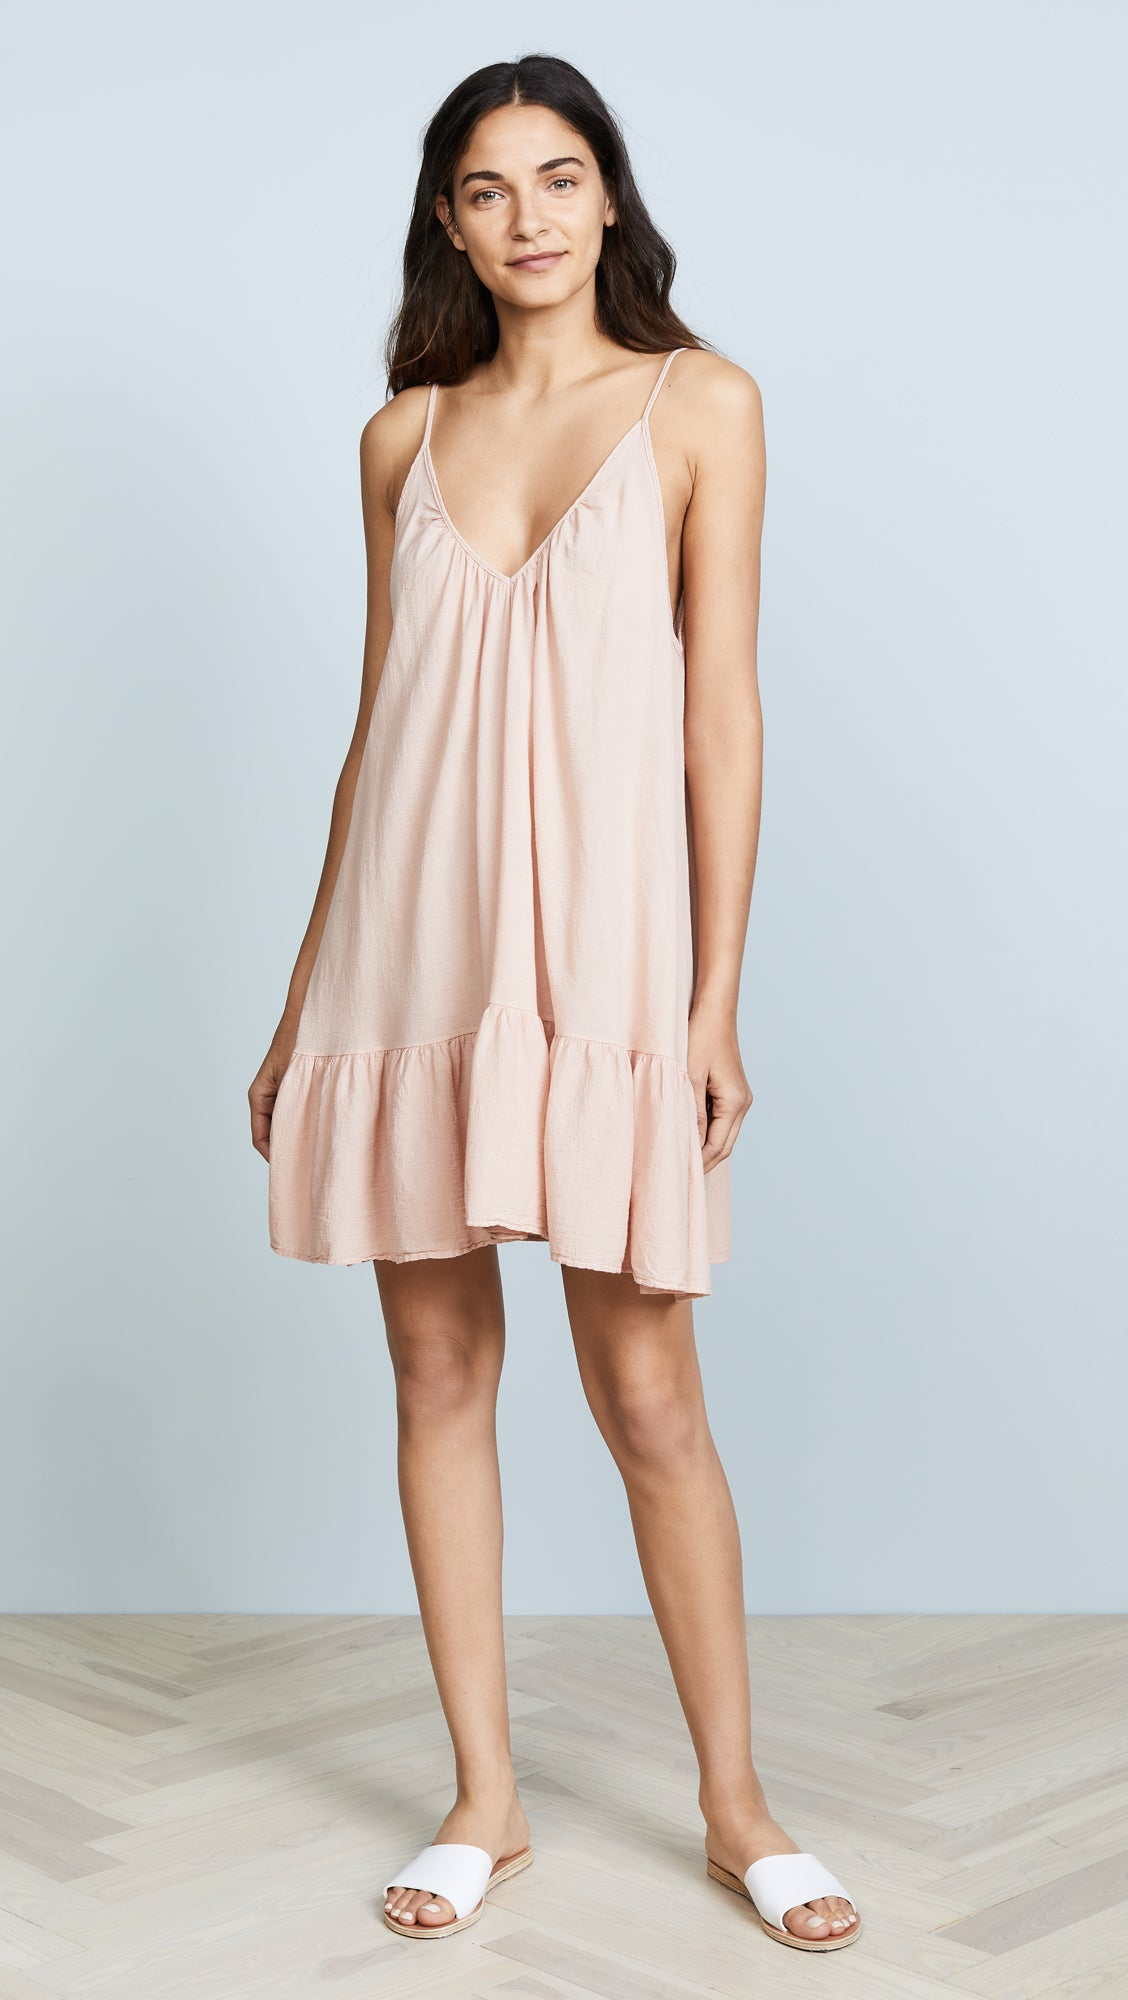 9Seed St Tropez Ruffle Cover Up Mini Dress Dusty Rose | ShopAA